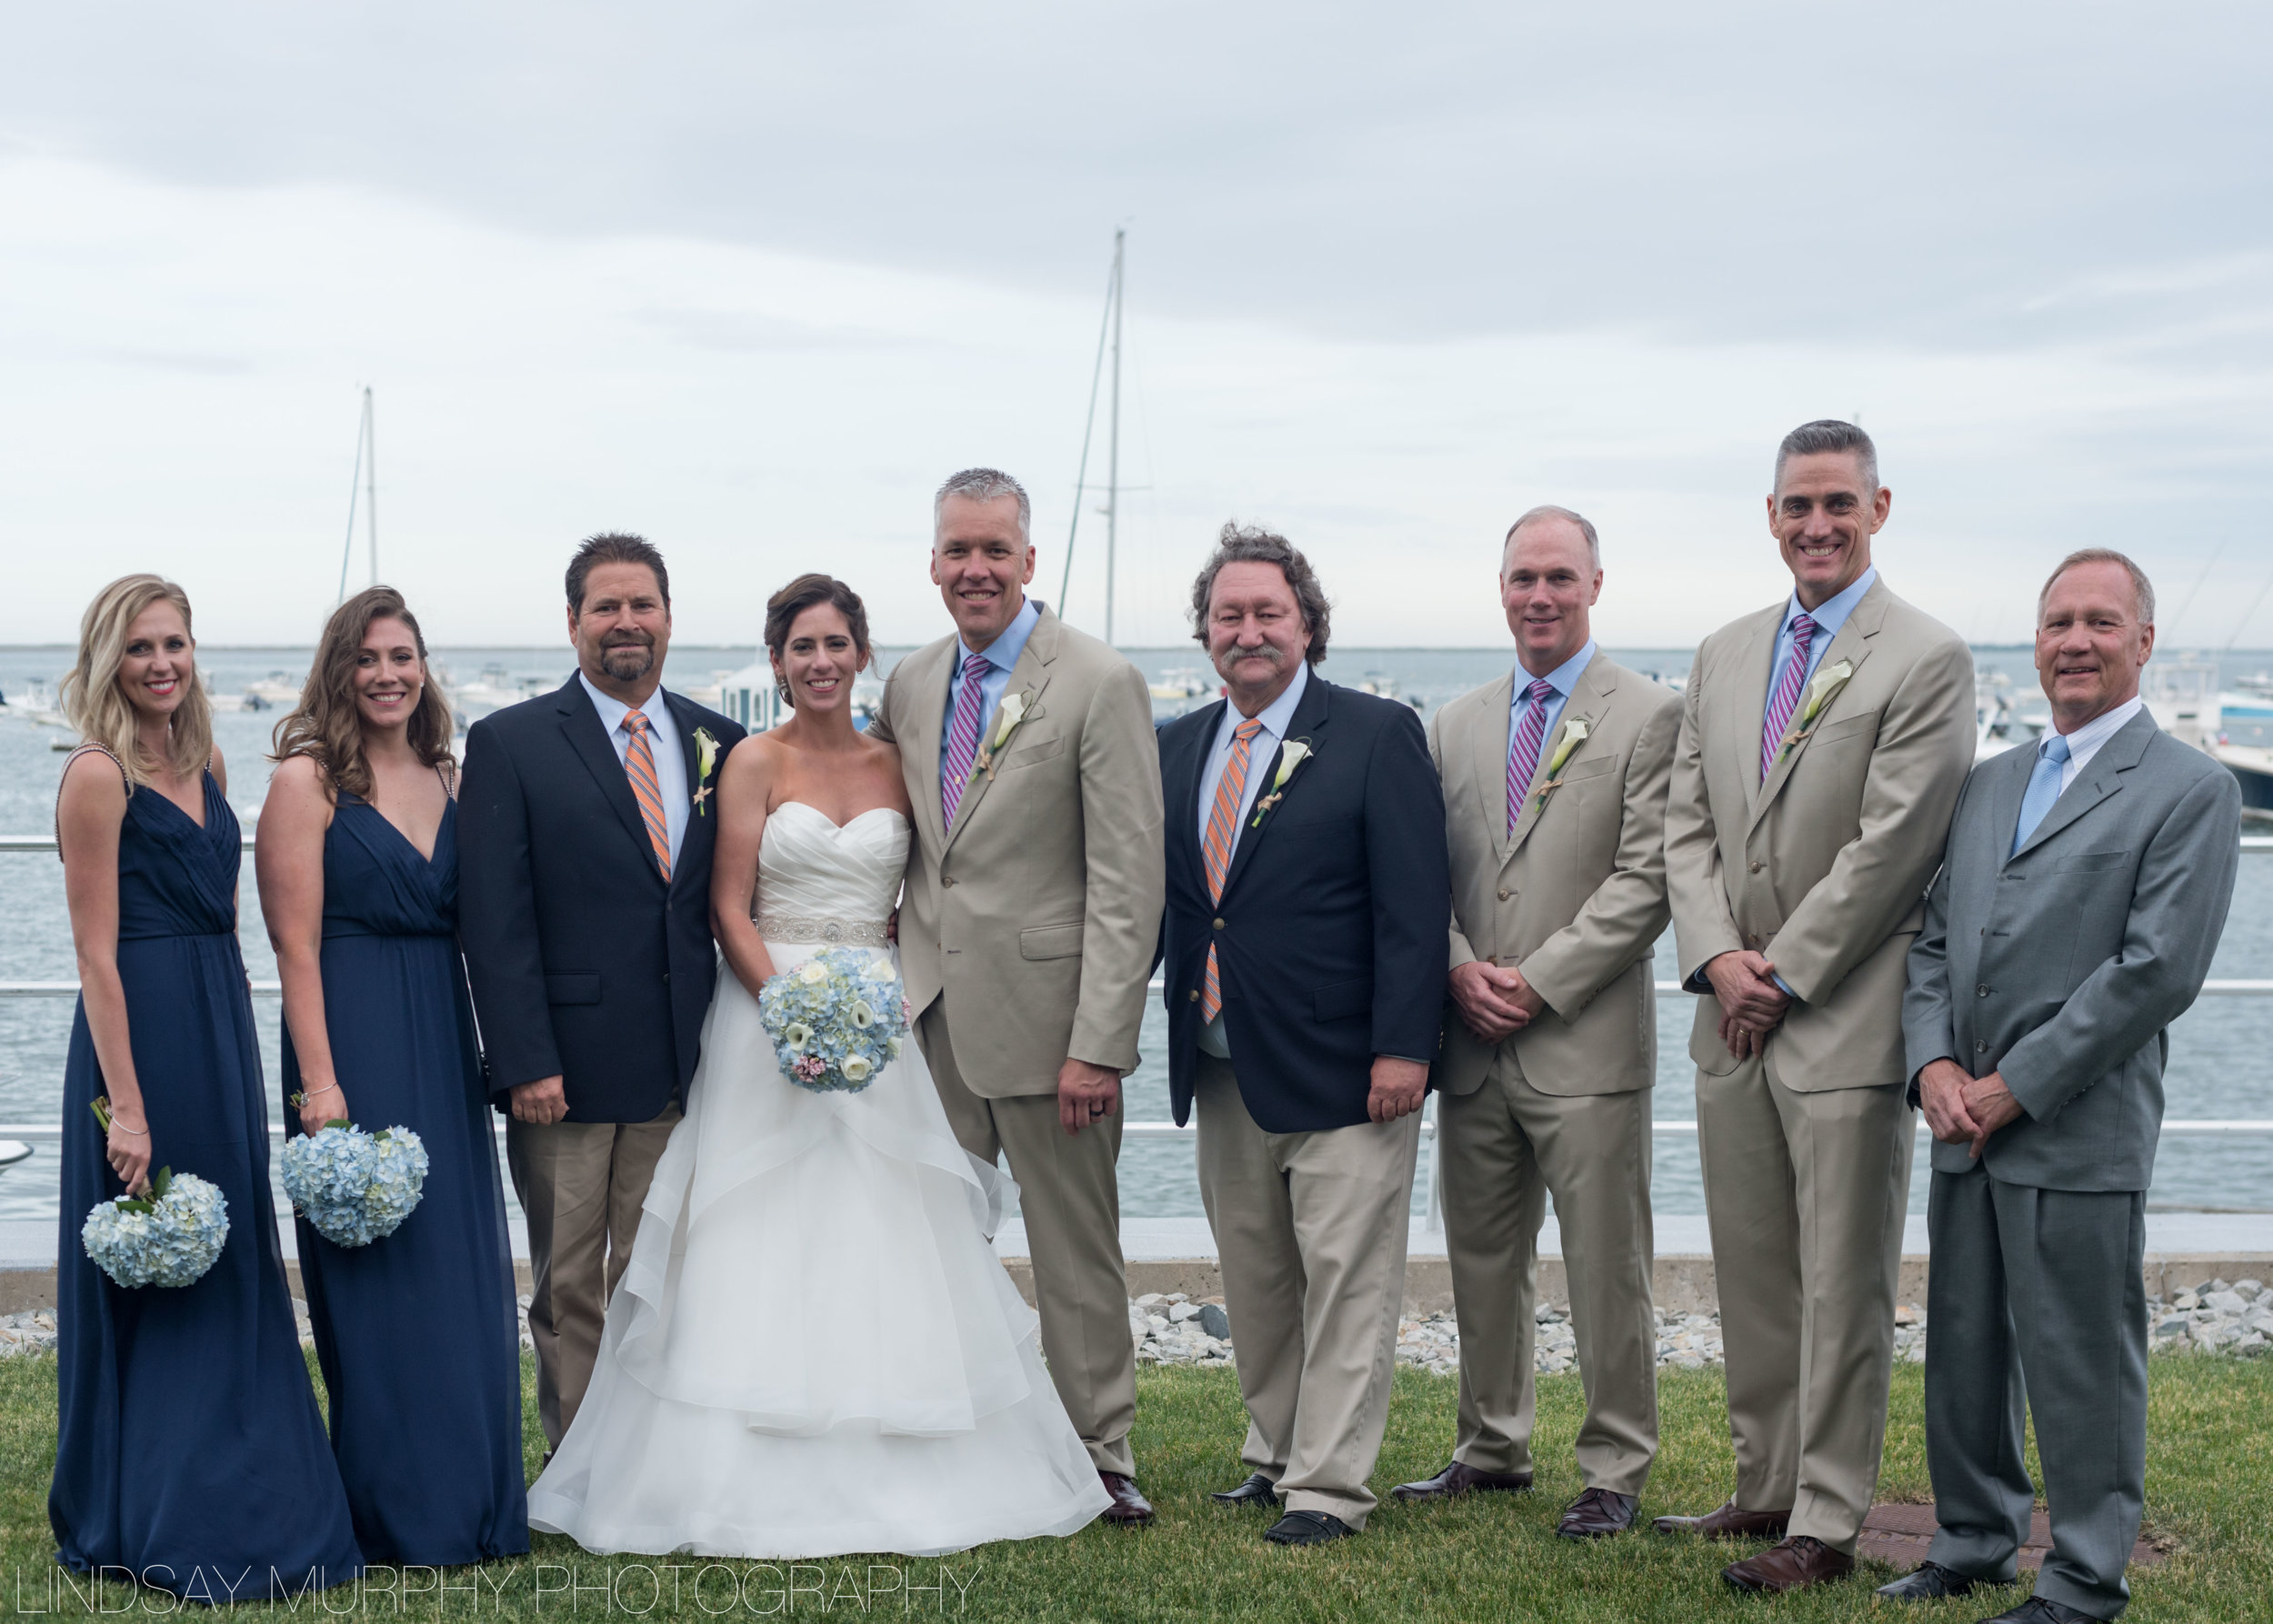 Duxbury_Wedding_Photographer-305.jpg